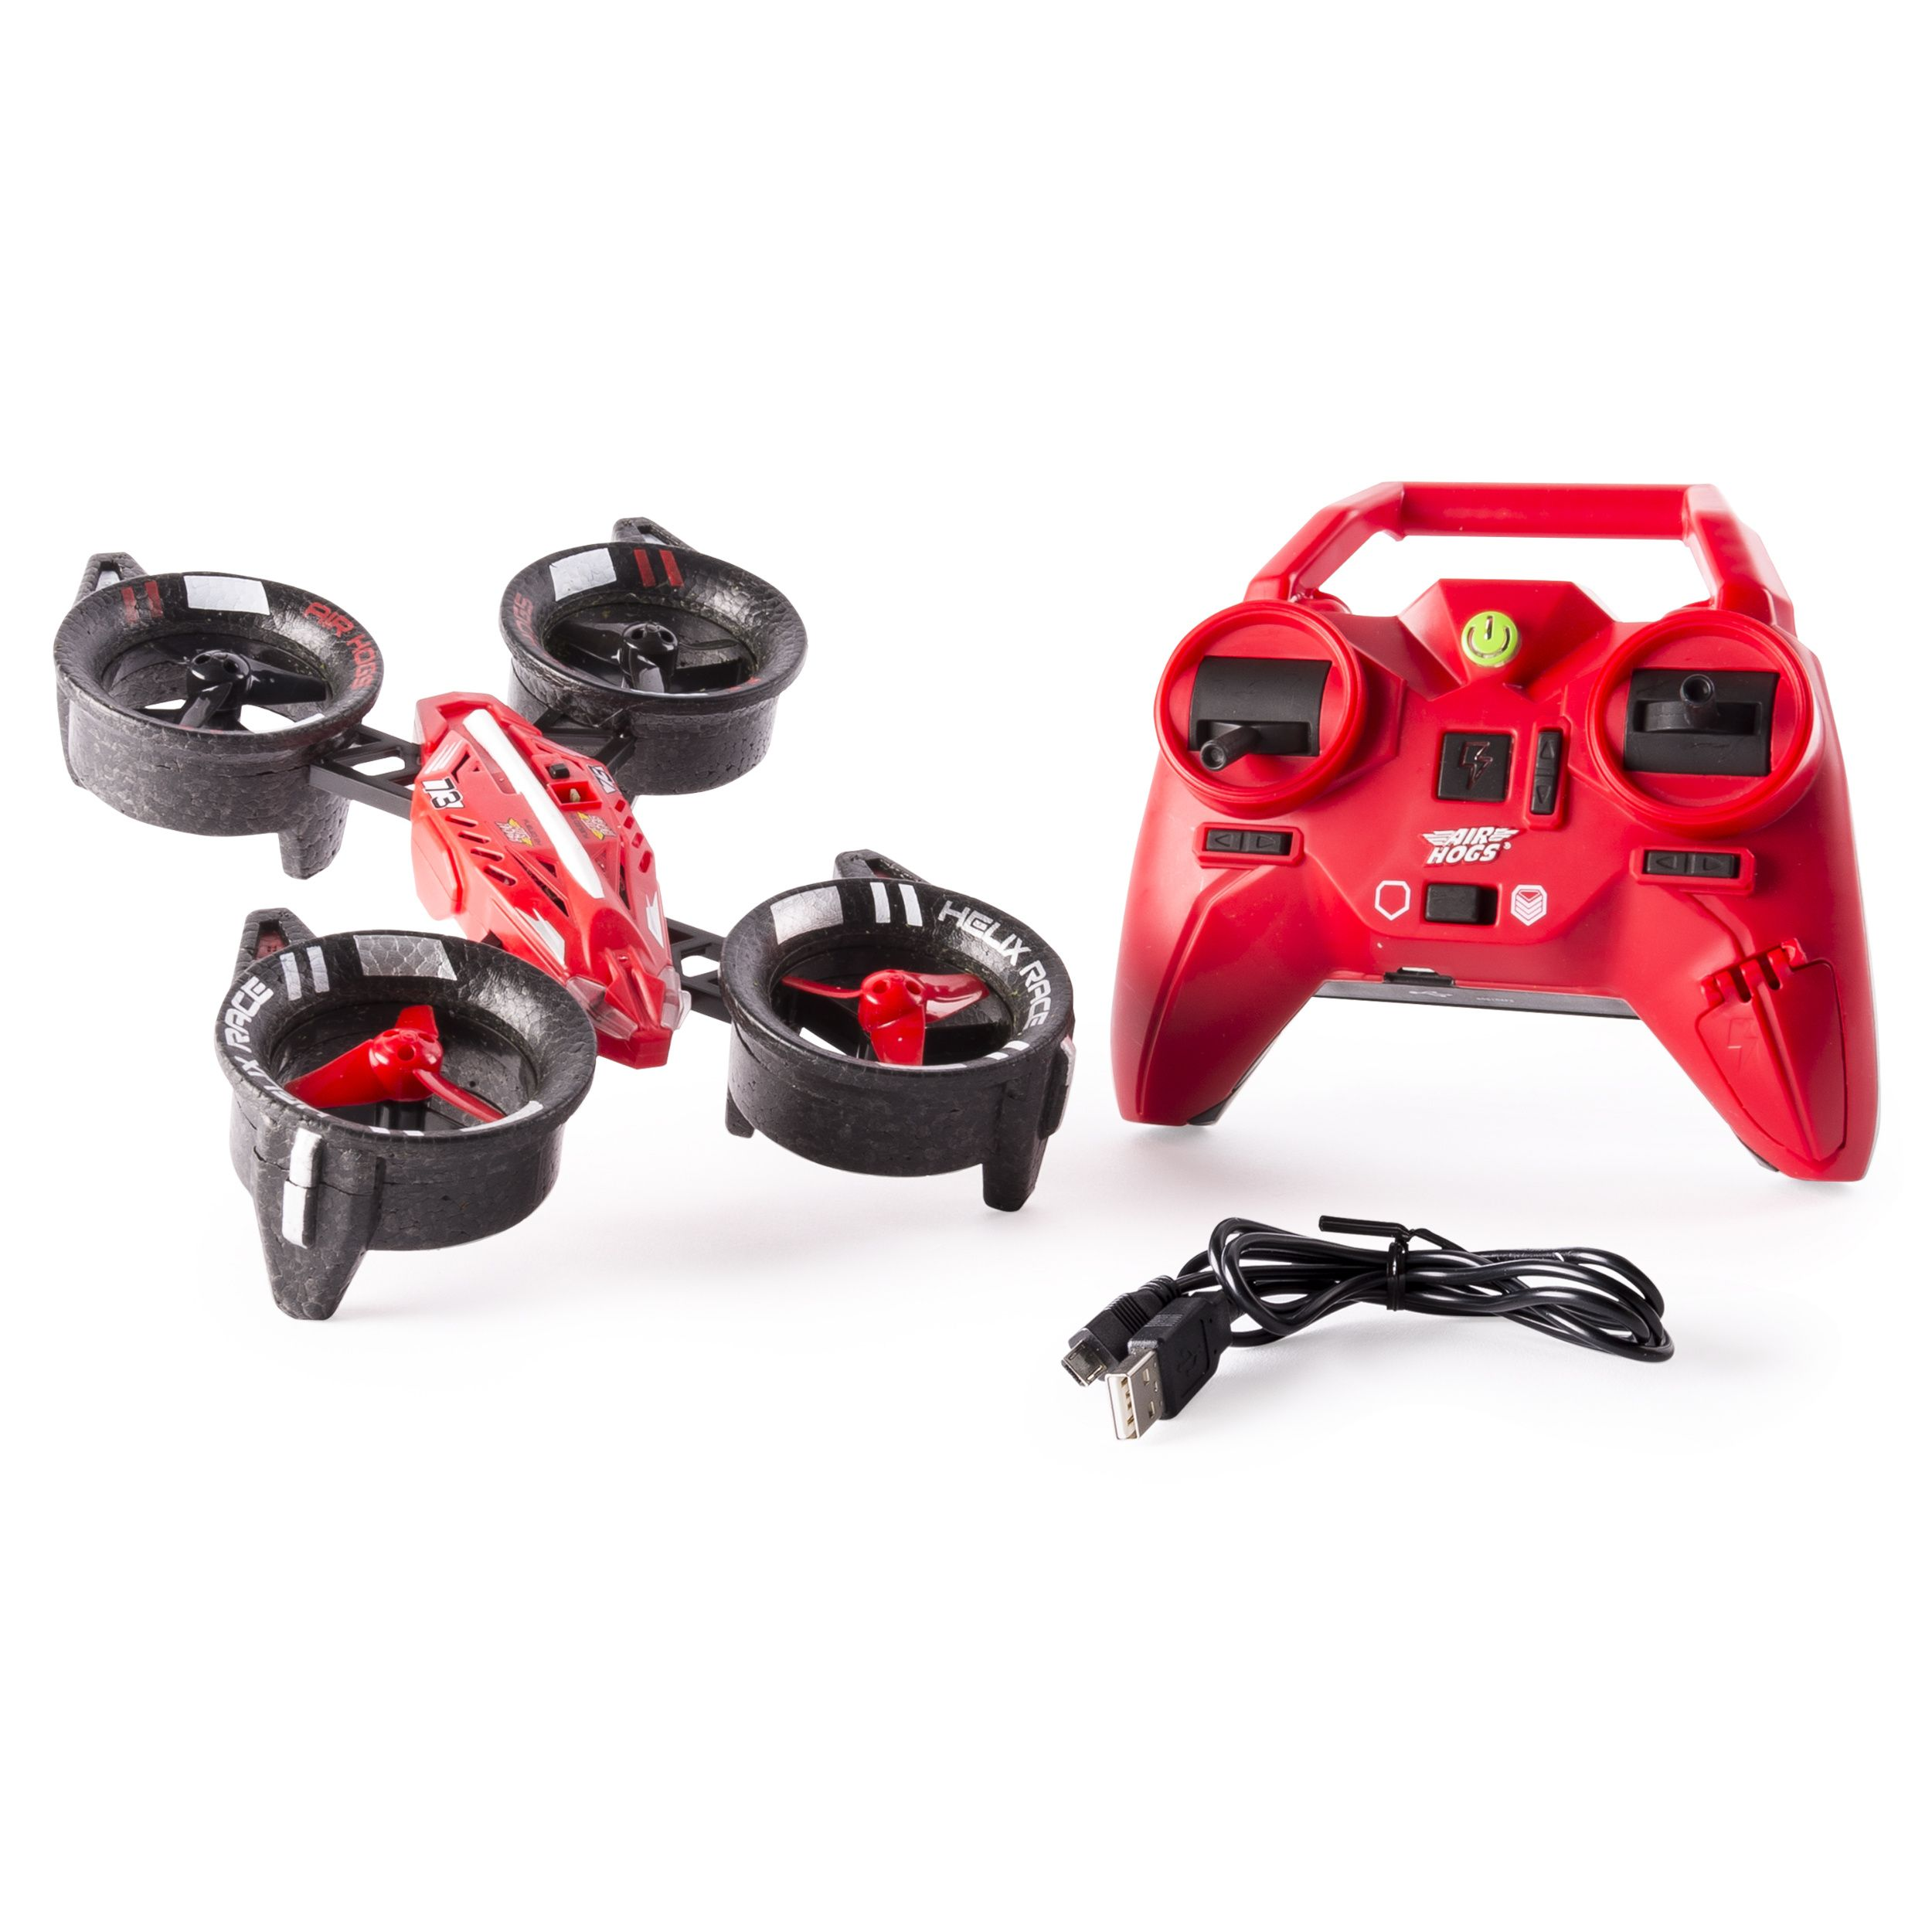 Air Hogs Helix Race Drone 2 4 Ghz Red Rc Vehicle di 2020